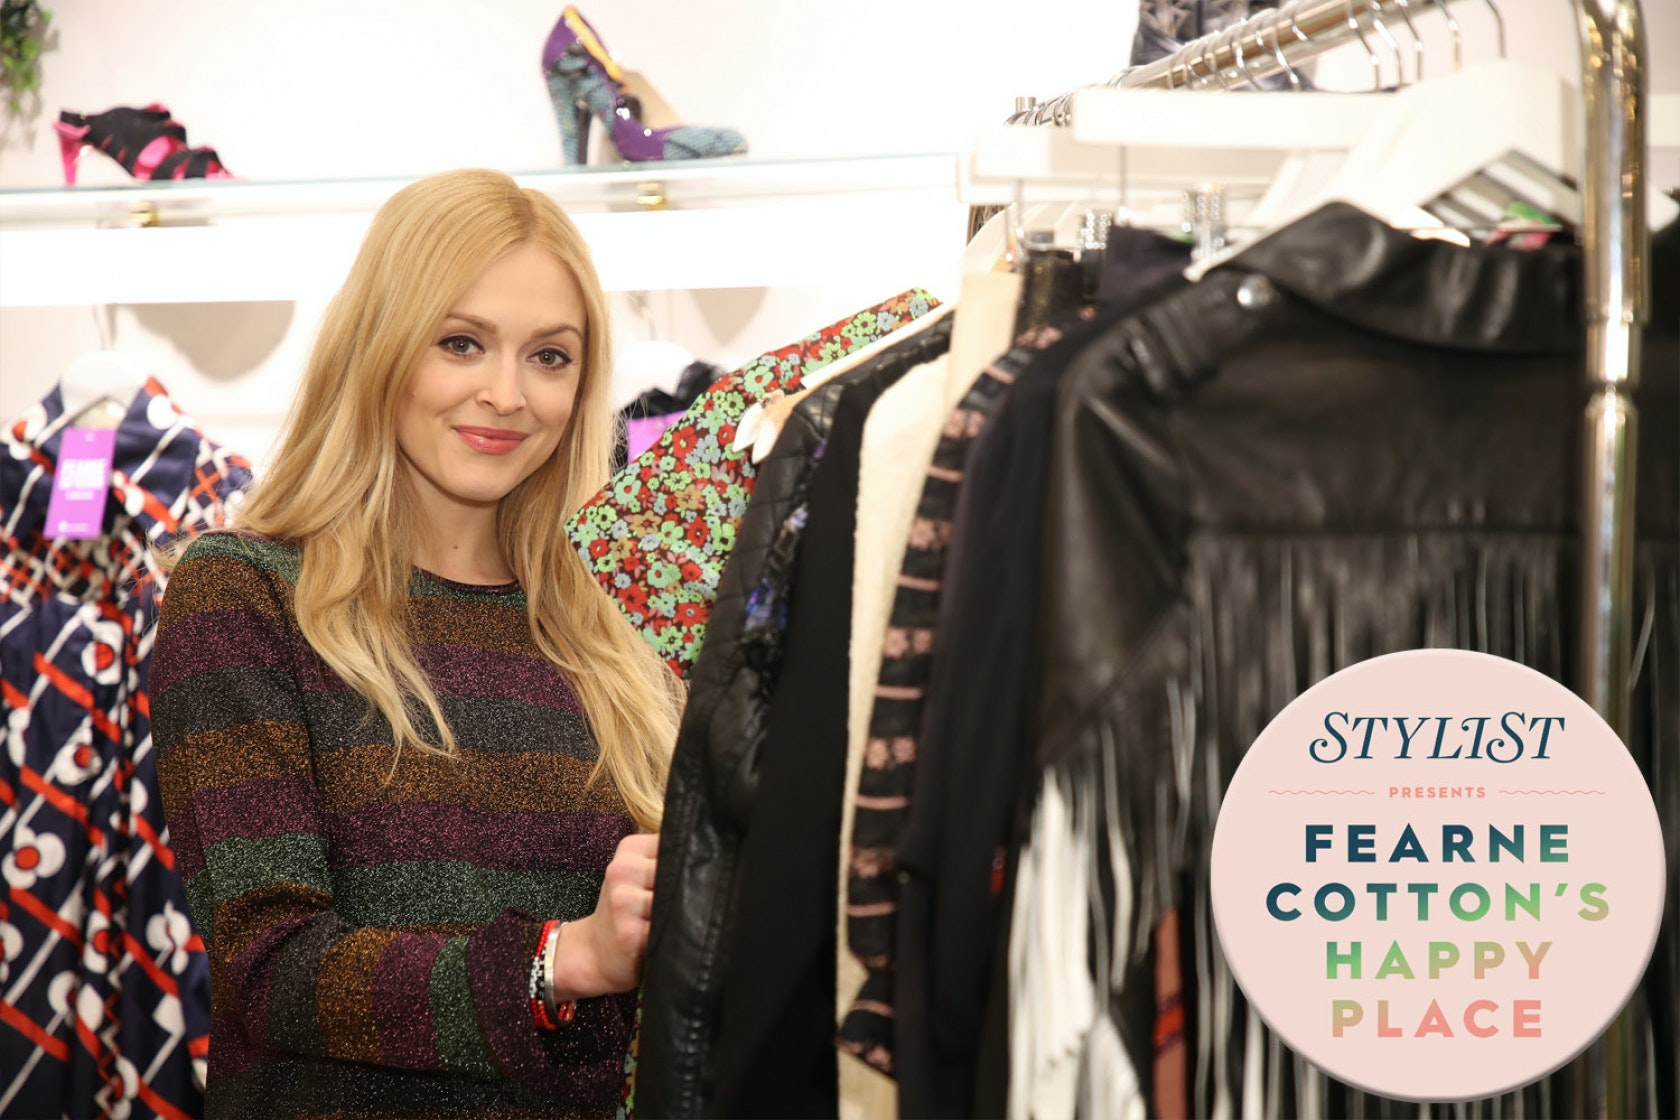 Fearne Cotton: 6 Must-Obey Style Rules She Wants You To Know